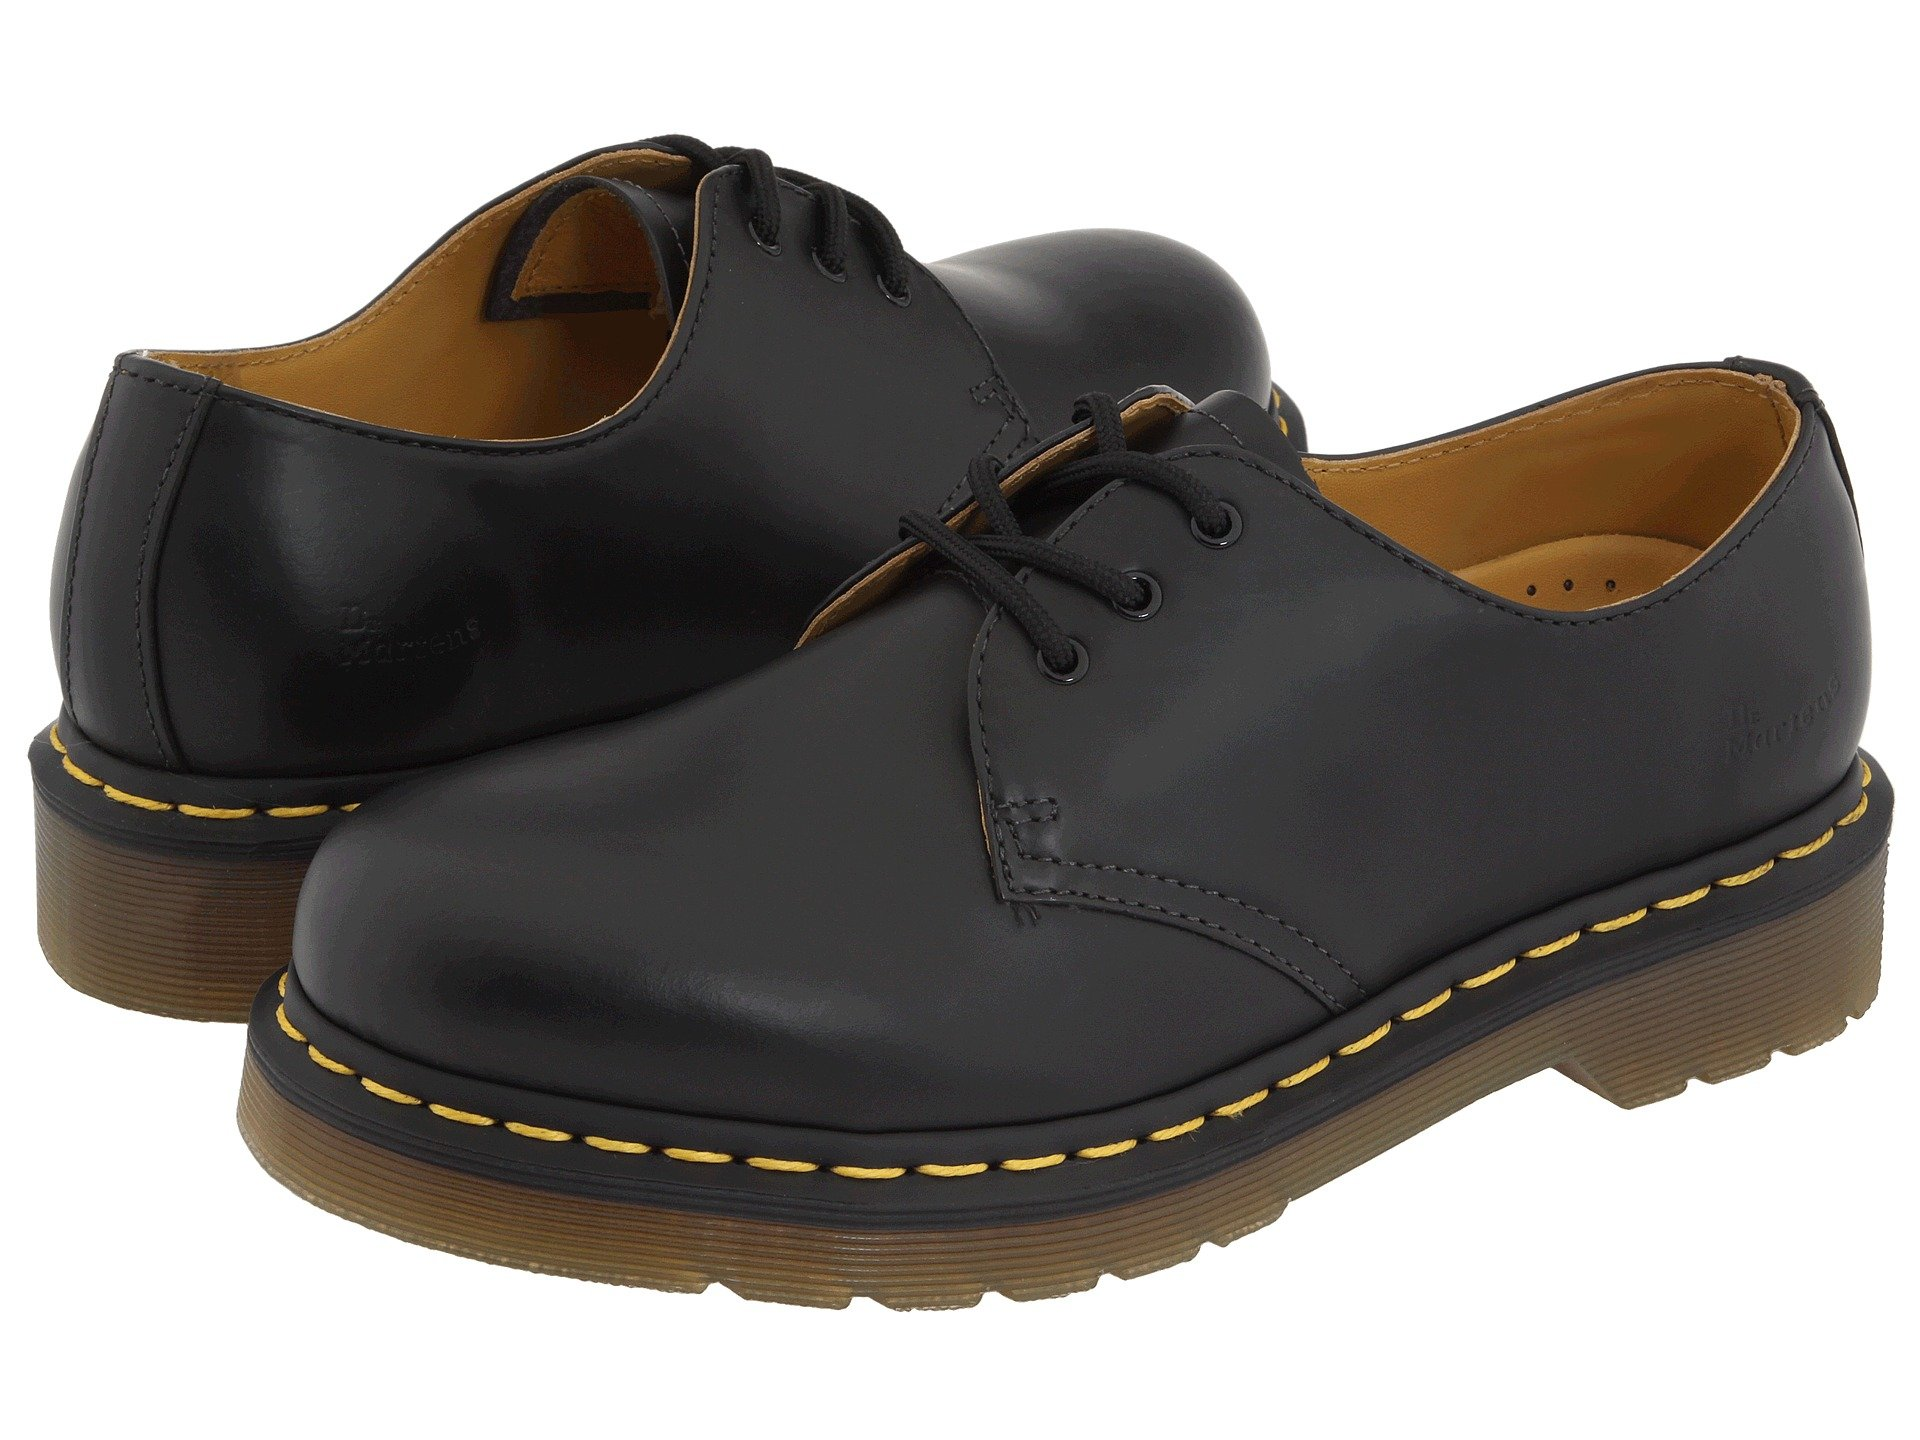 a4da9365b1 Women s Oxfords + FREE SHIPPING